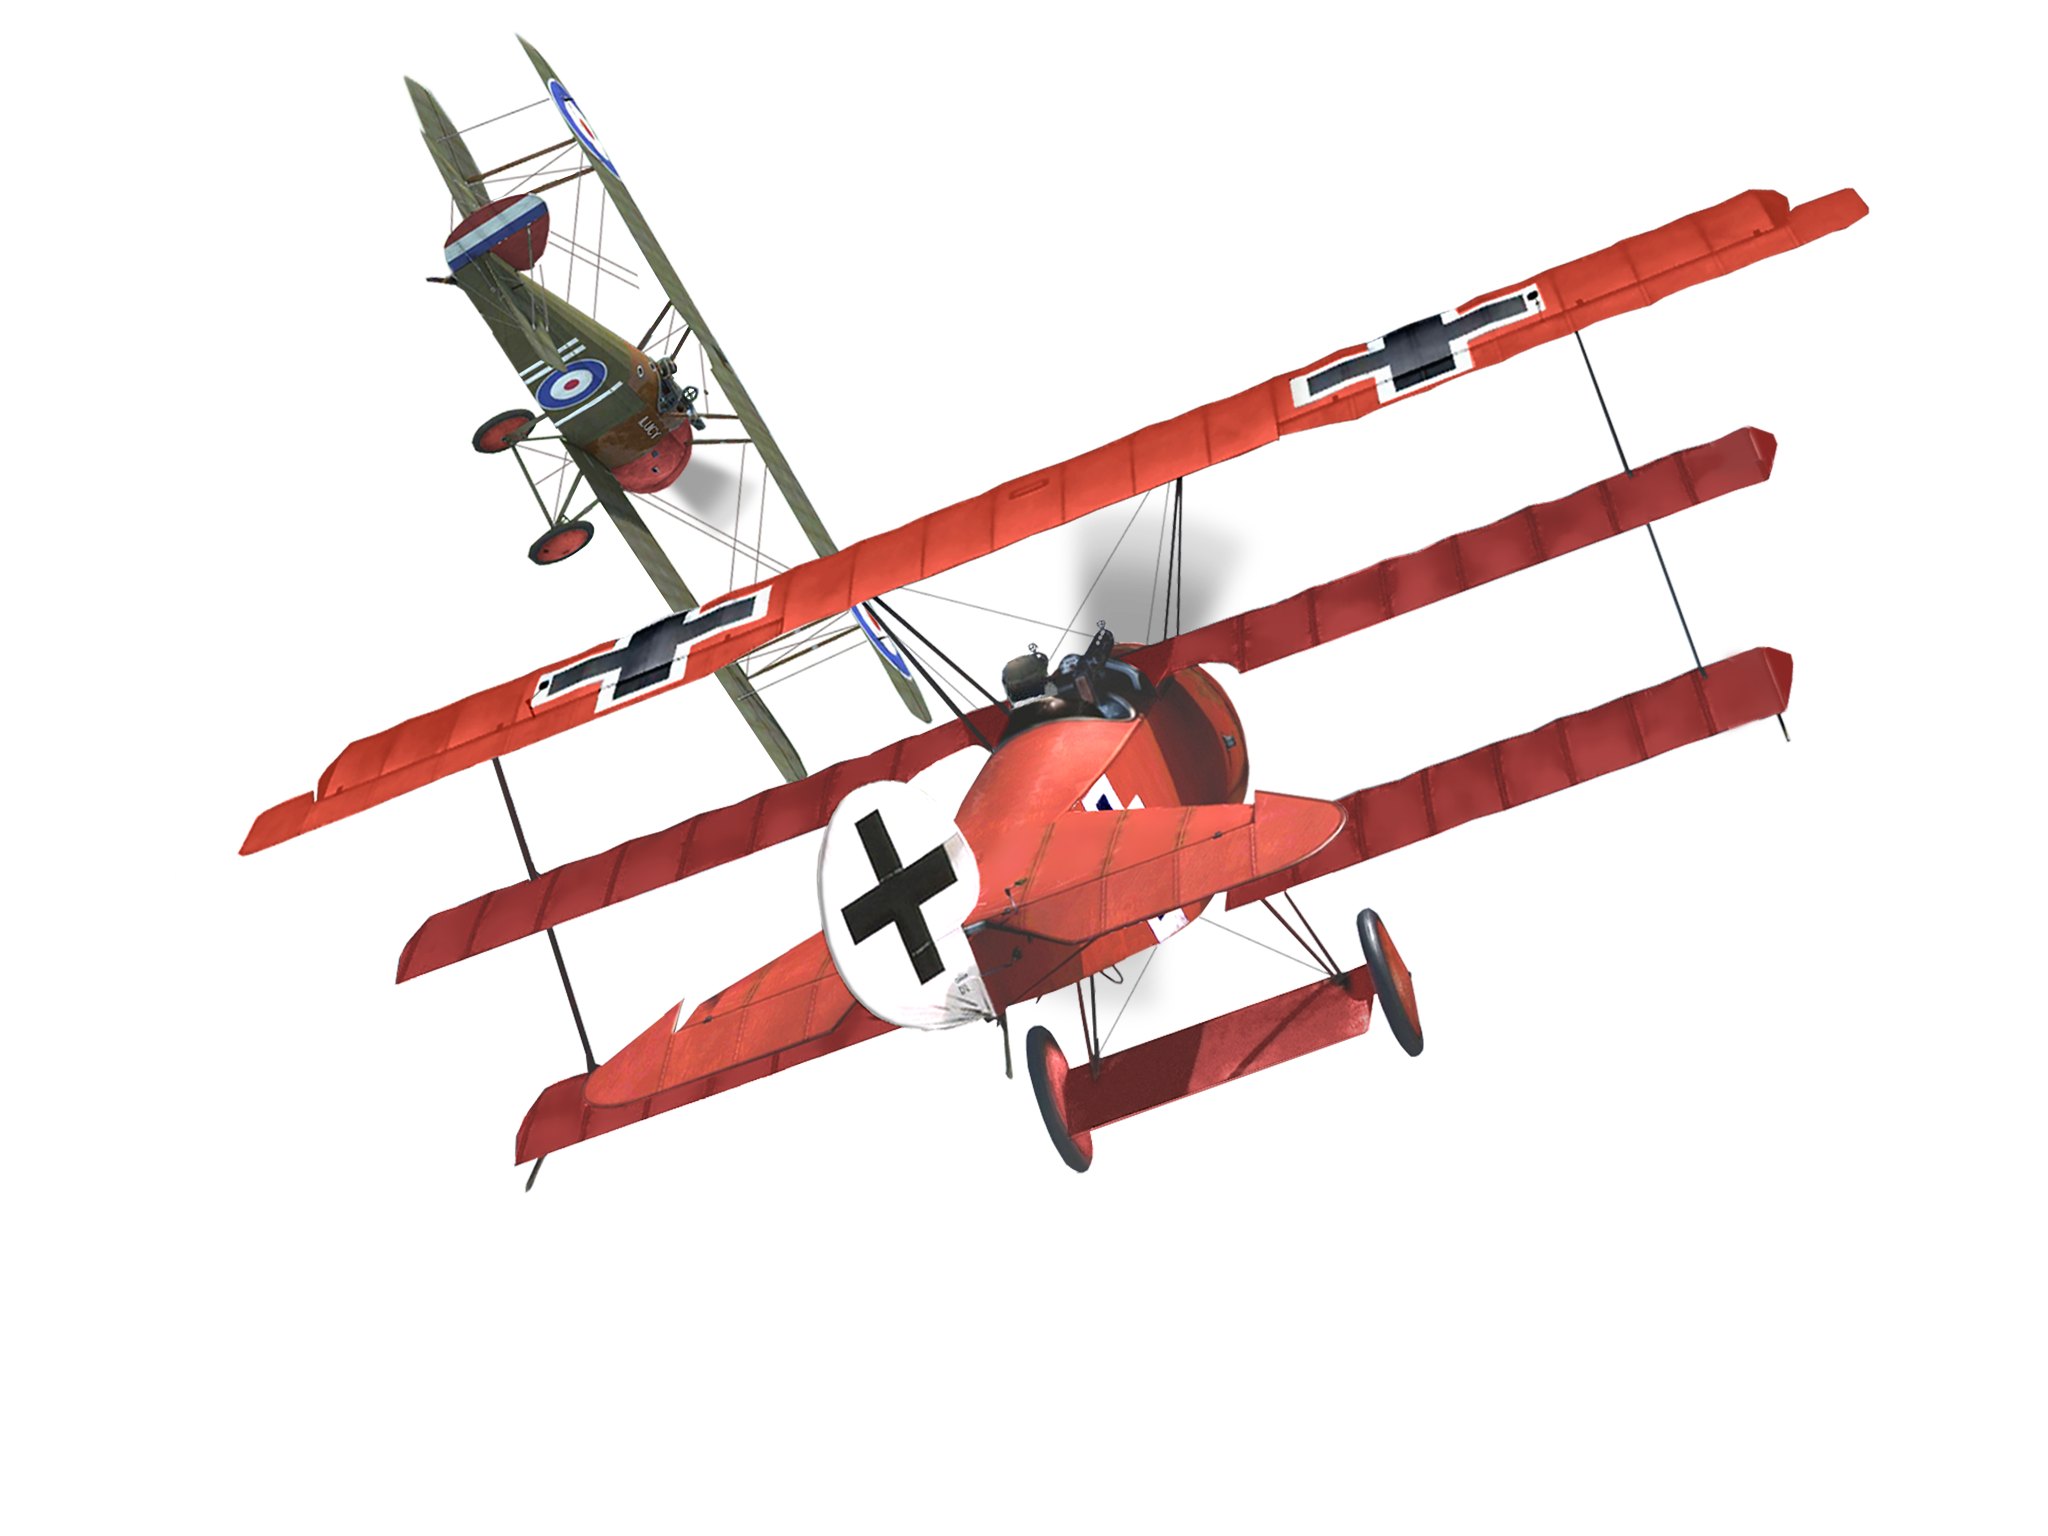 Biplane clipart stunt plane. The red baron manfred